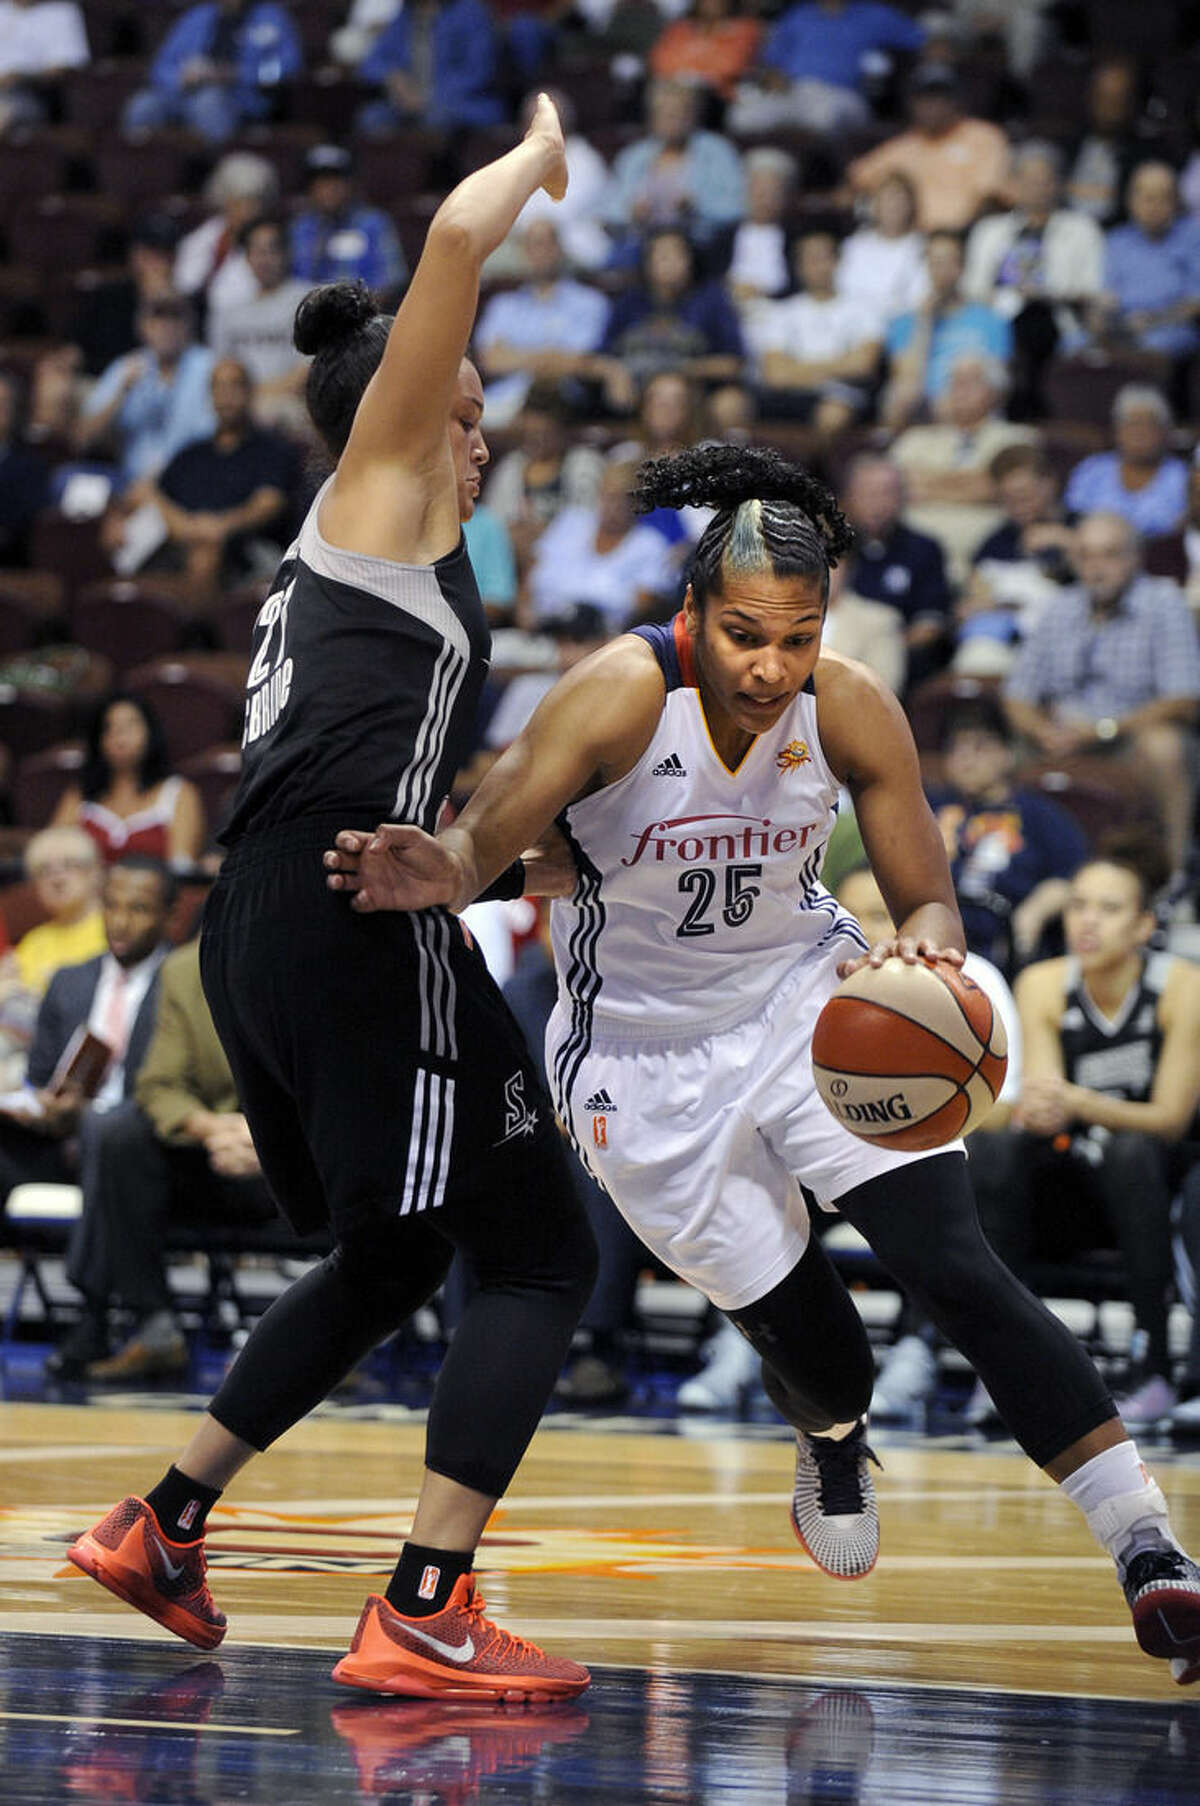 Connecticut Sun's Alyssa Thomas (25) drives past San Antonio Stars's Kayla McBride (21) during the first half of a WNBA basketball game in Uncasville, Conn., on Tuesday, Aug. 4, 2015. (AP Photo/Fred Beckham)